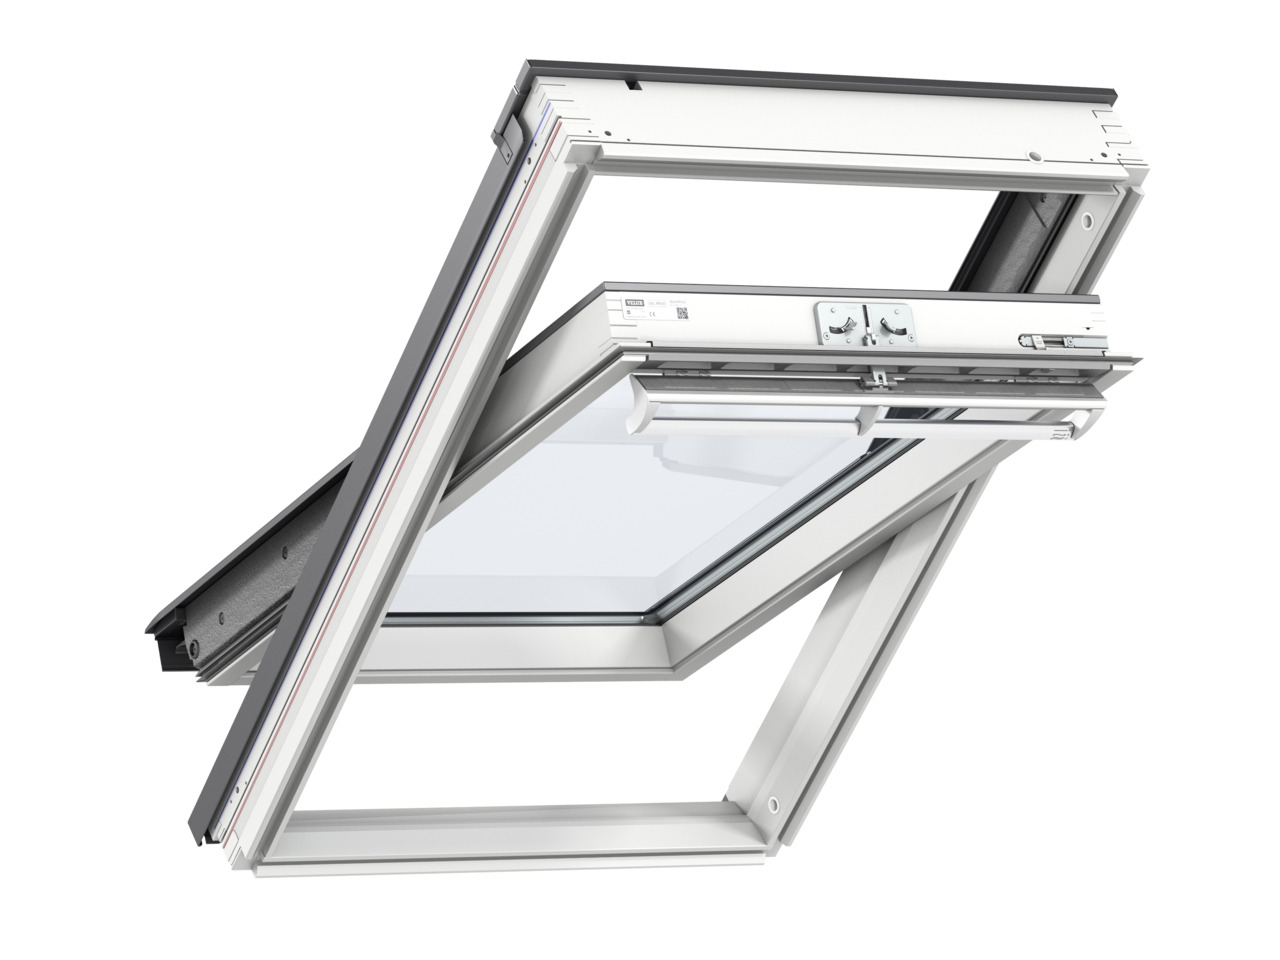 Velux GGL CK02 550 x 780mm Centre Pivot 60Pane Roof Window - White Painted